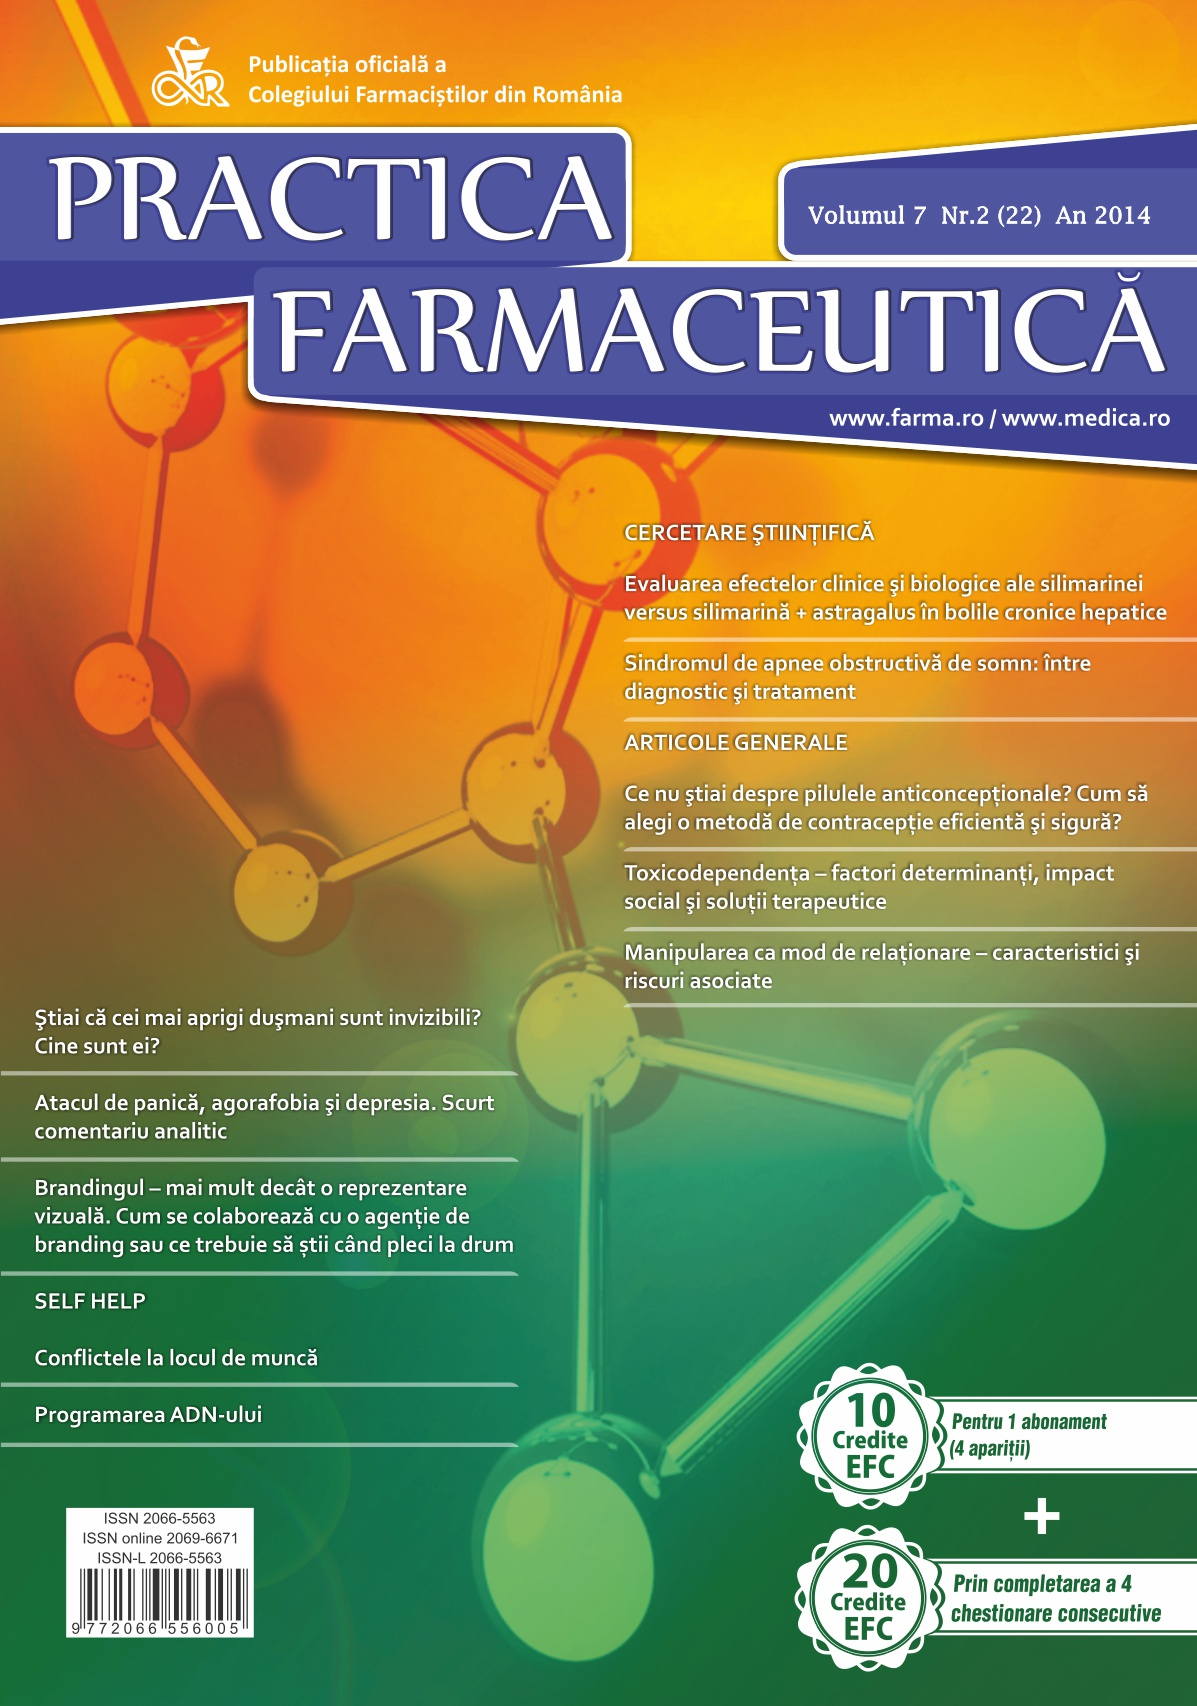 Revista Practica Farmaceutica, Vol. 7, Nr. 2 (22), 2014